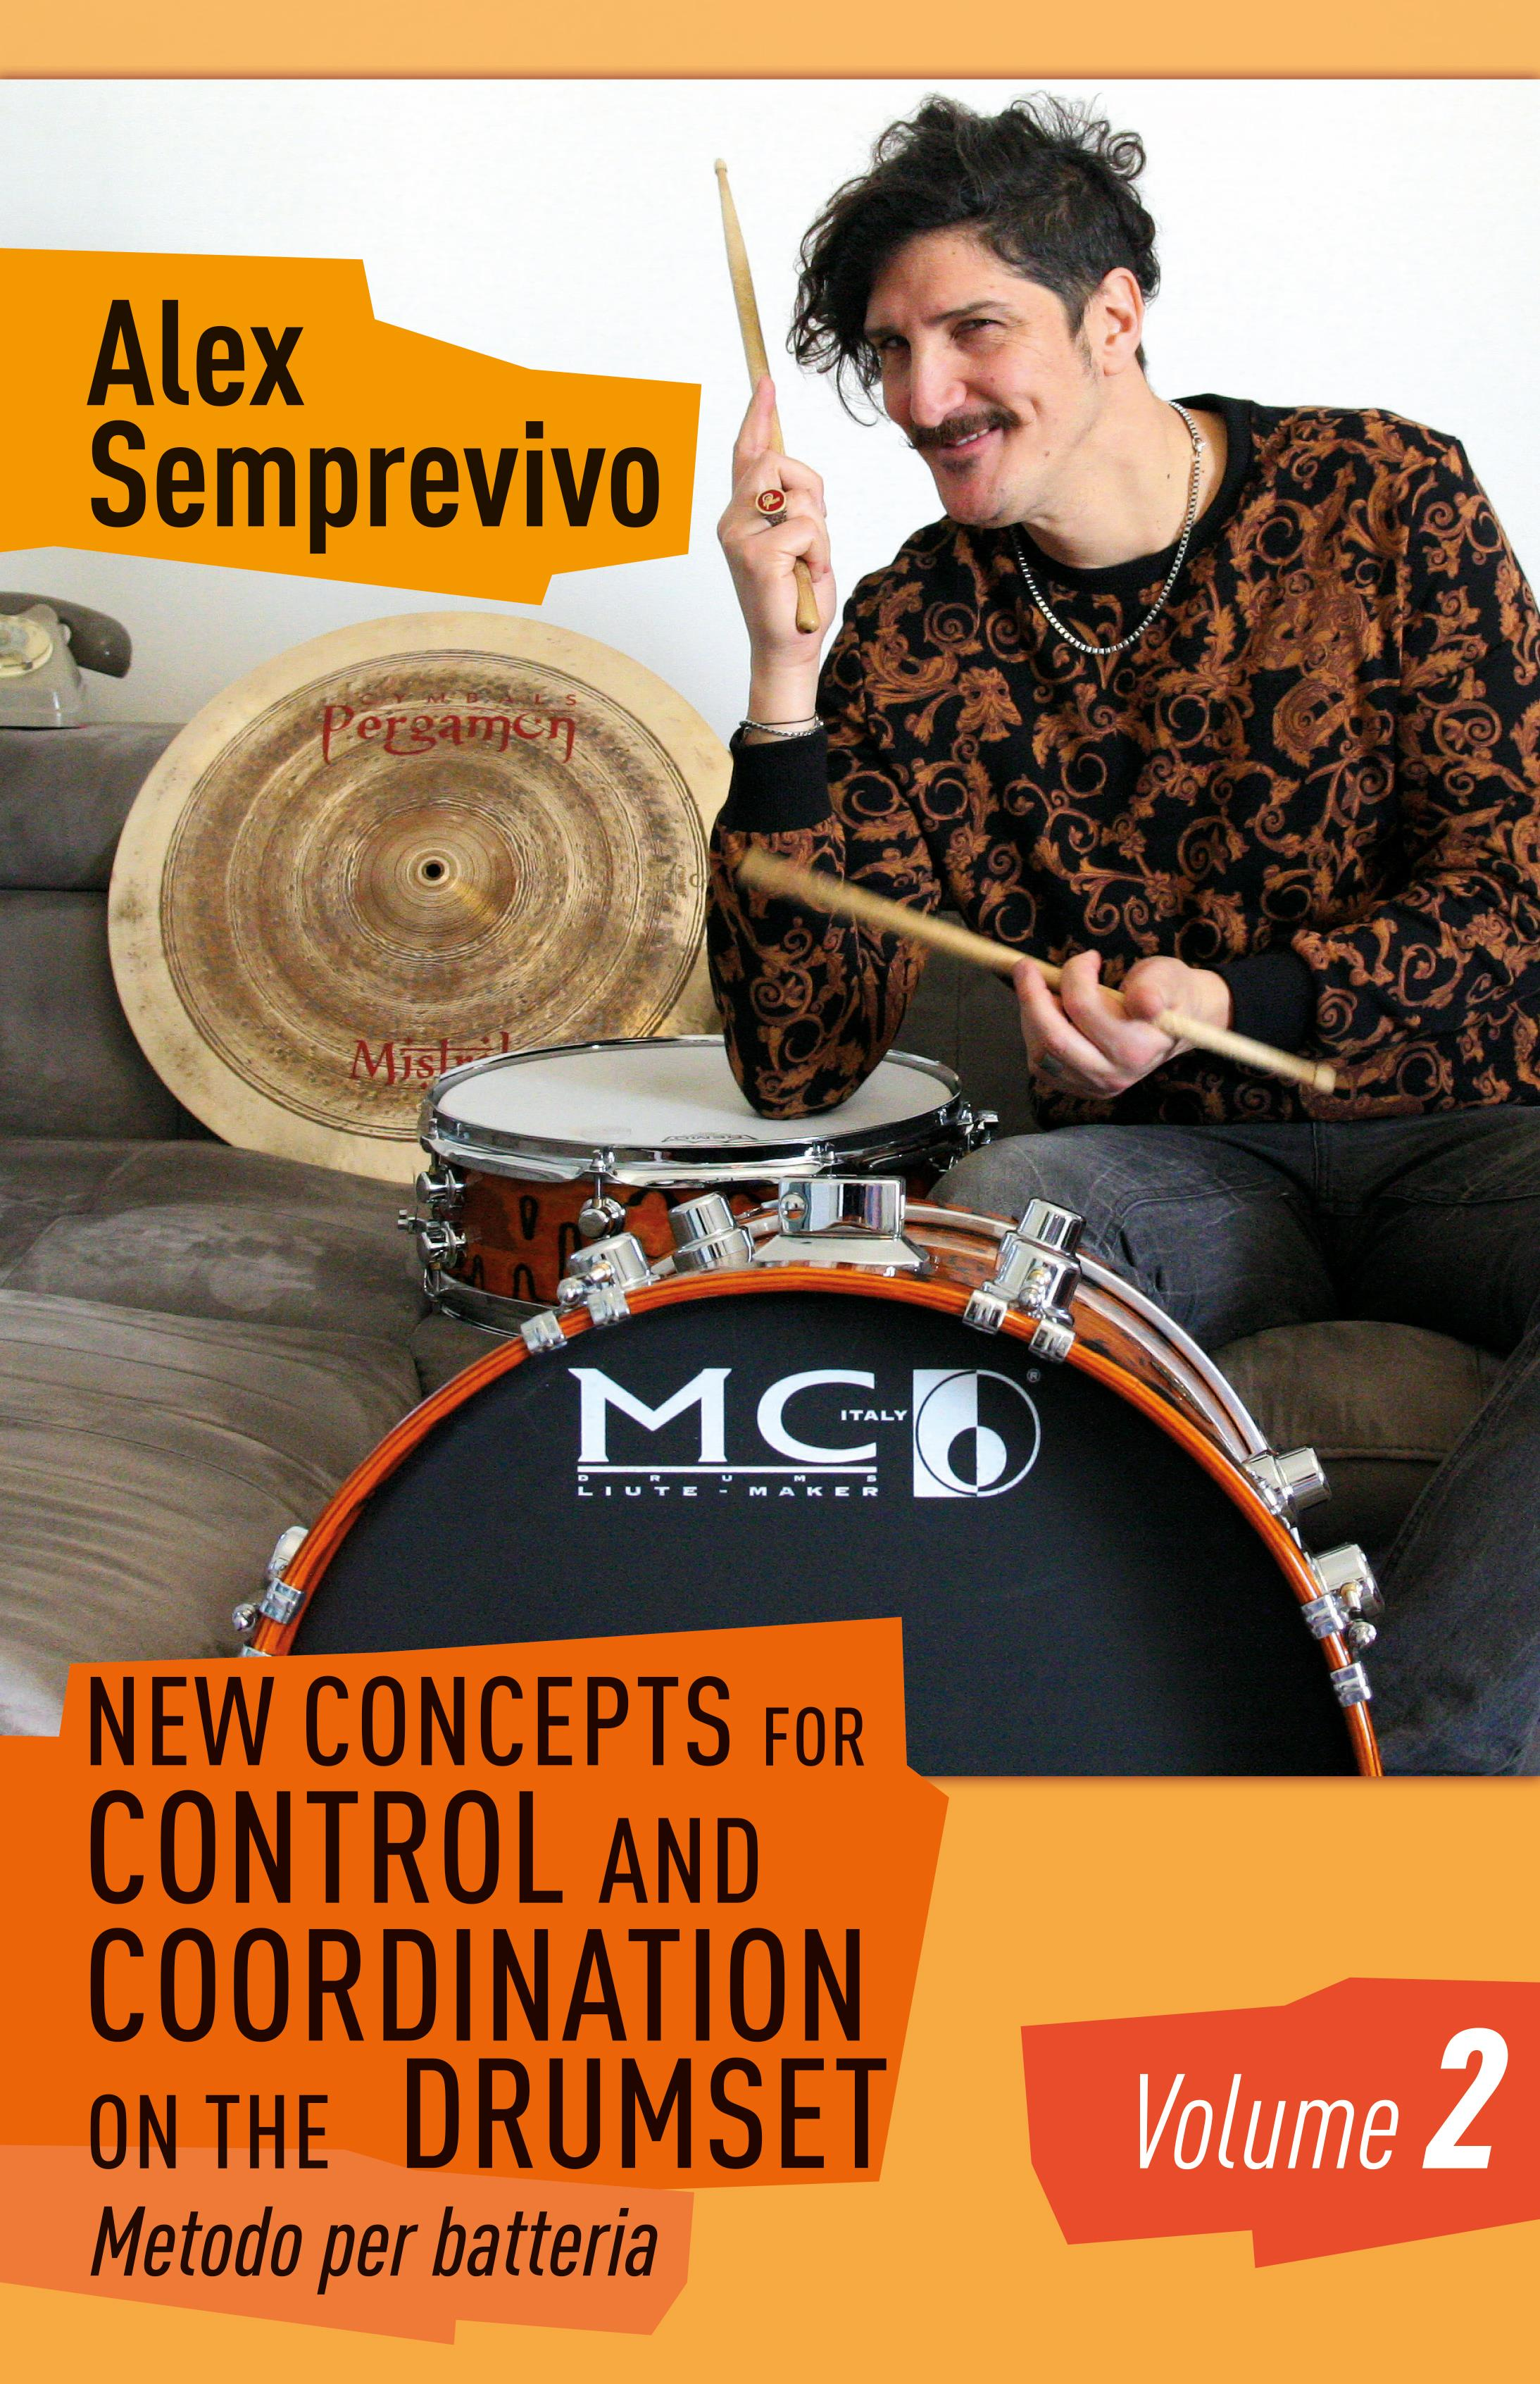 New Concepts for Control and Coordination on the Drumset Vol.2